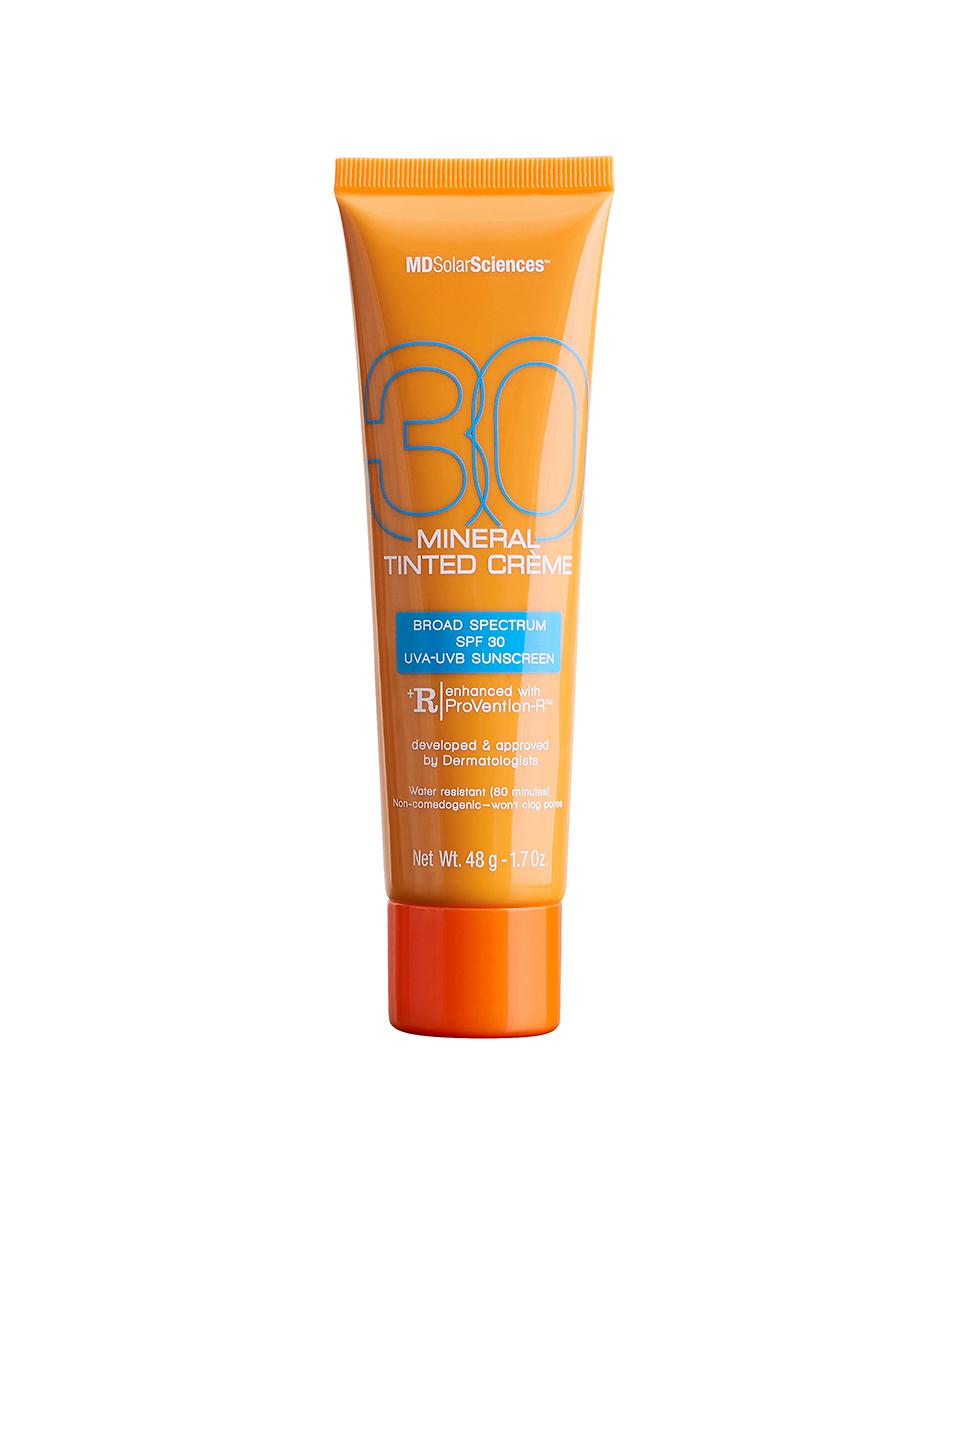 Mdsolarsciences Mineral Tinted Creme Spf 30 In N,a